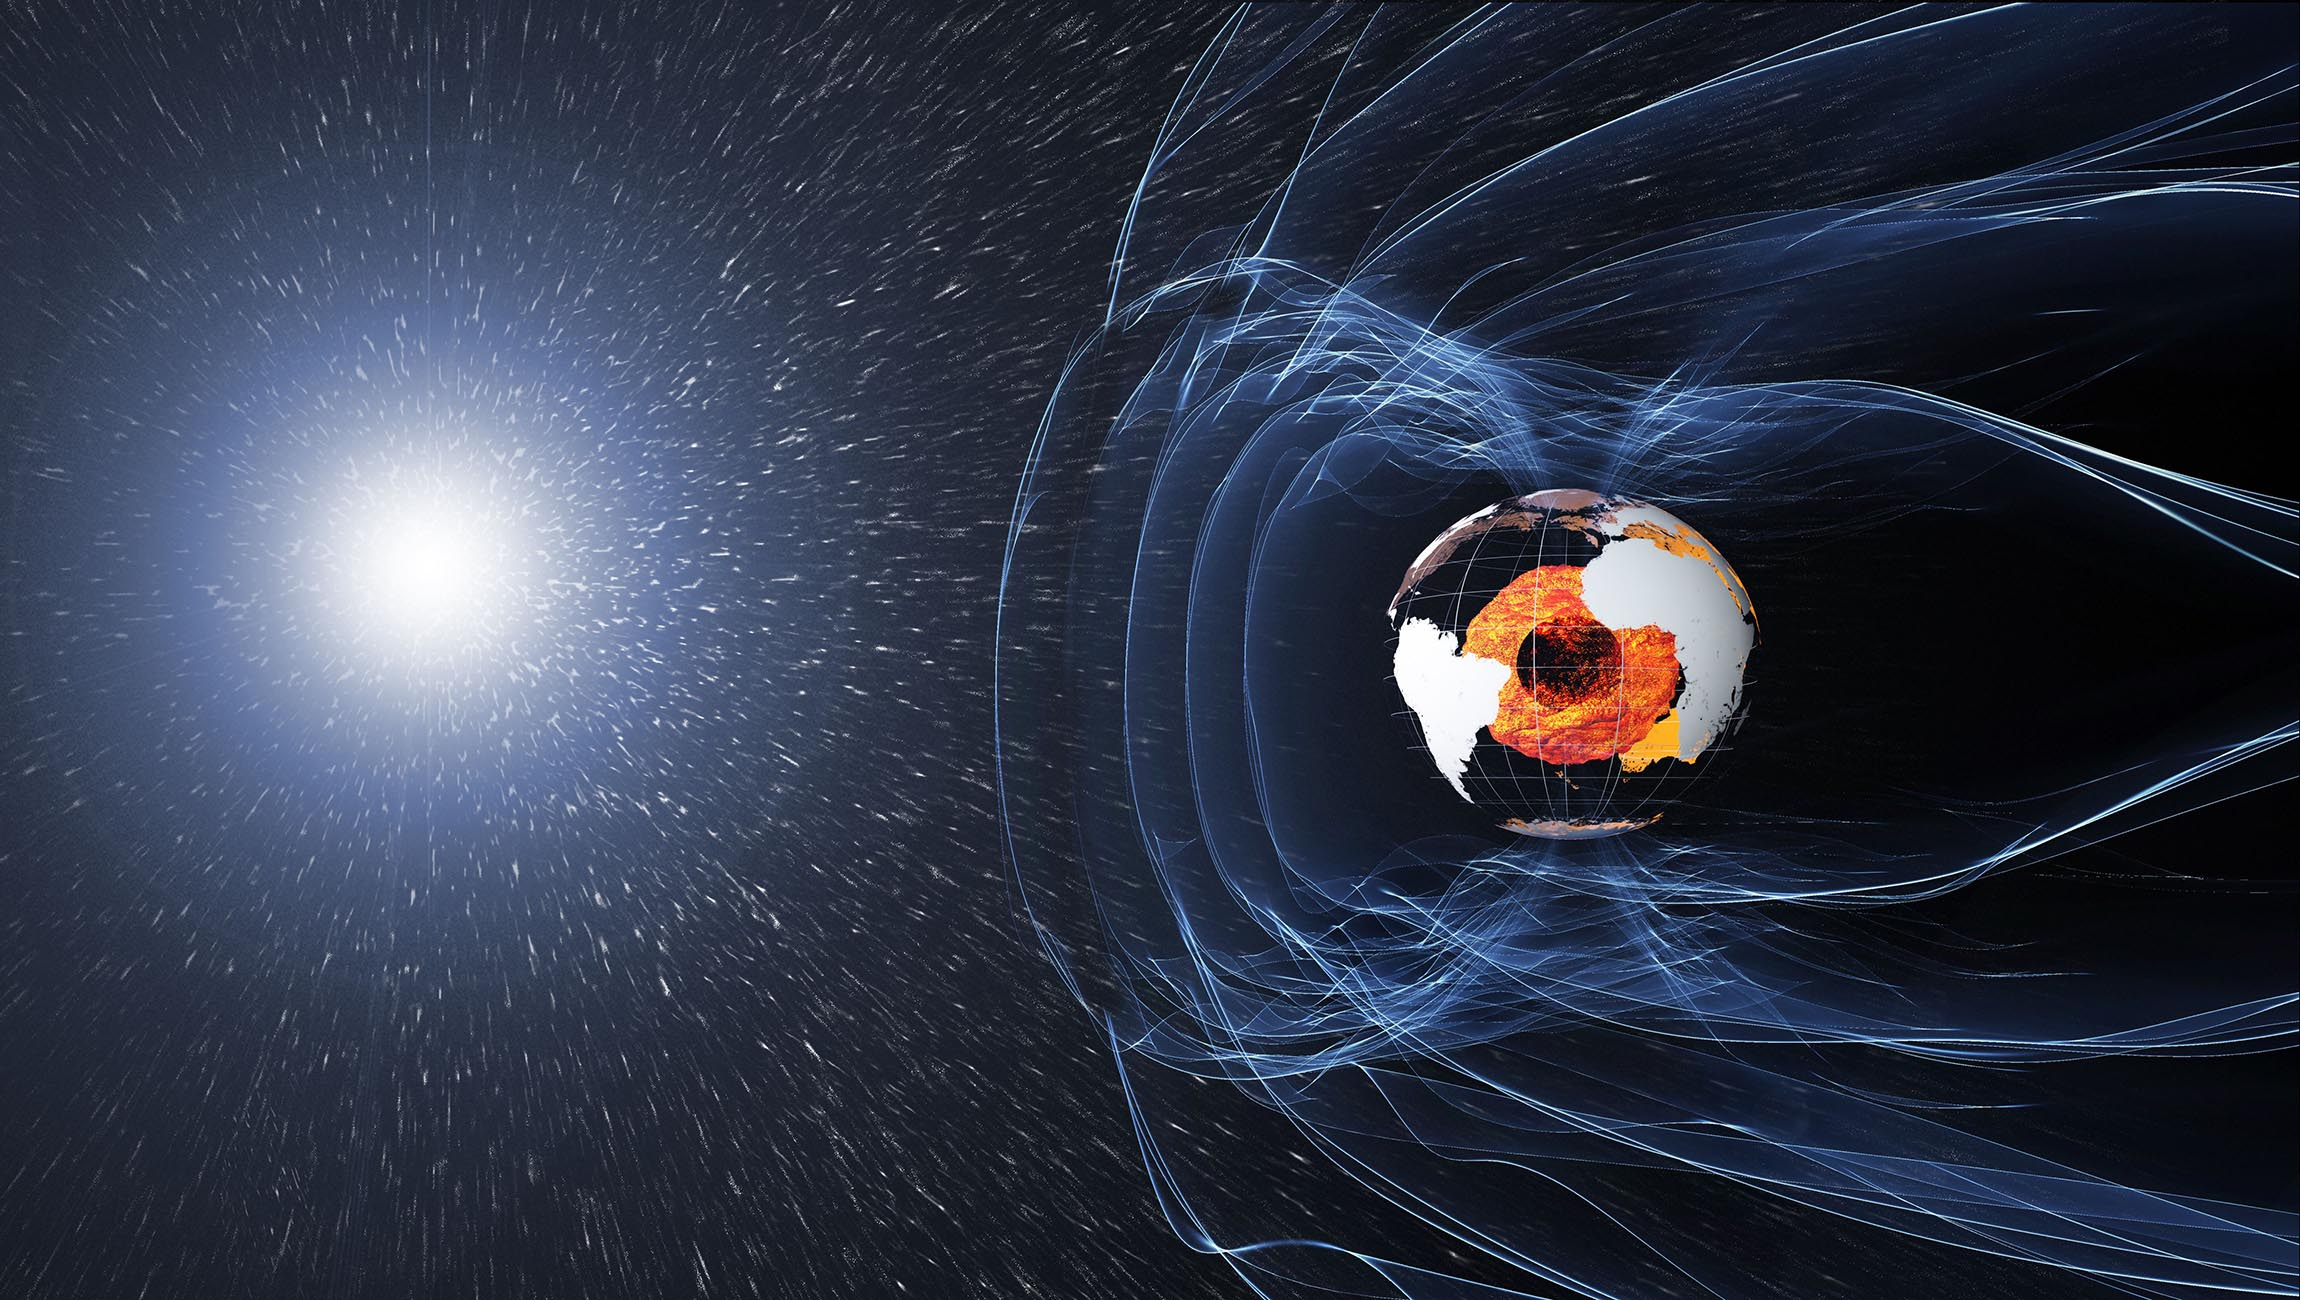 The magnetic field protecting our planet originates deep in the Earth's core but fluctuates in strength over time.